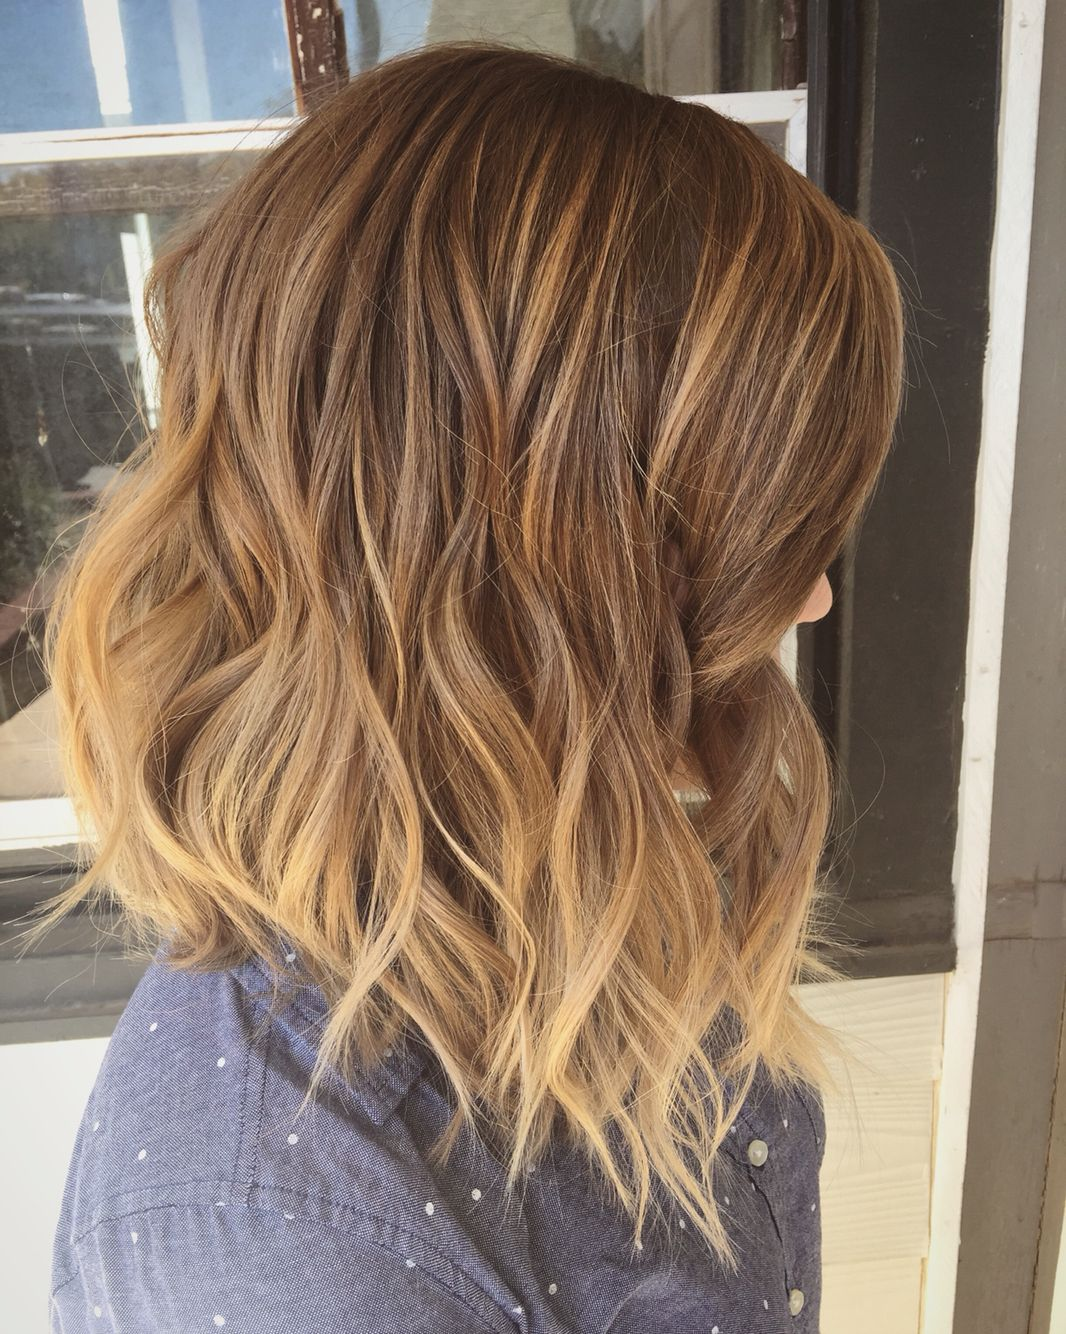 Long Bob Beach Waves Layered Hair Hair Hair Styles Long Bob